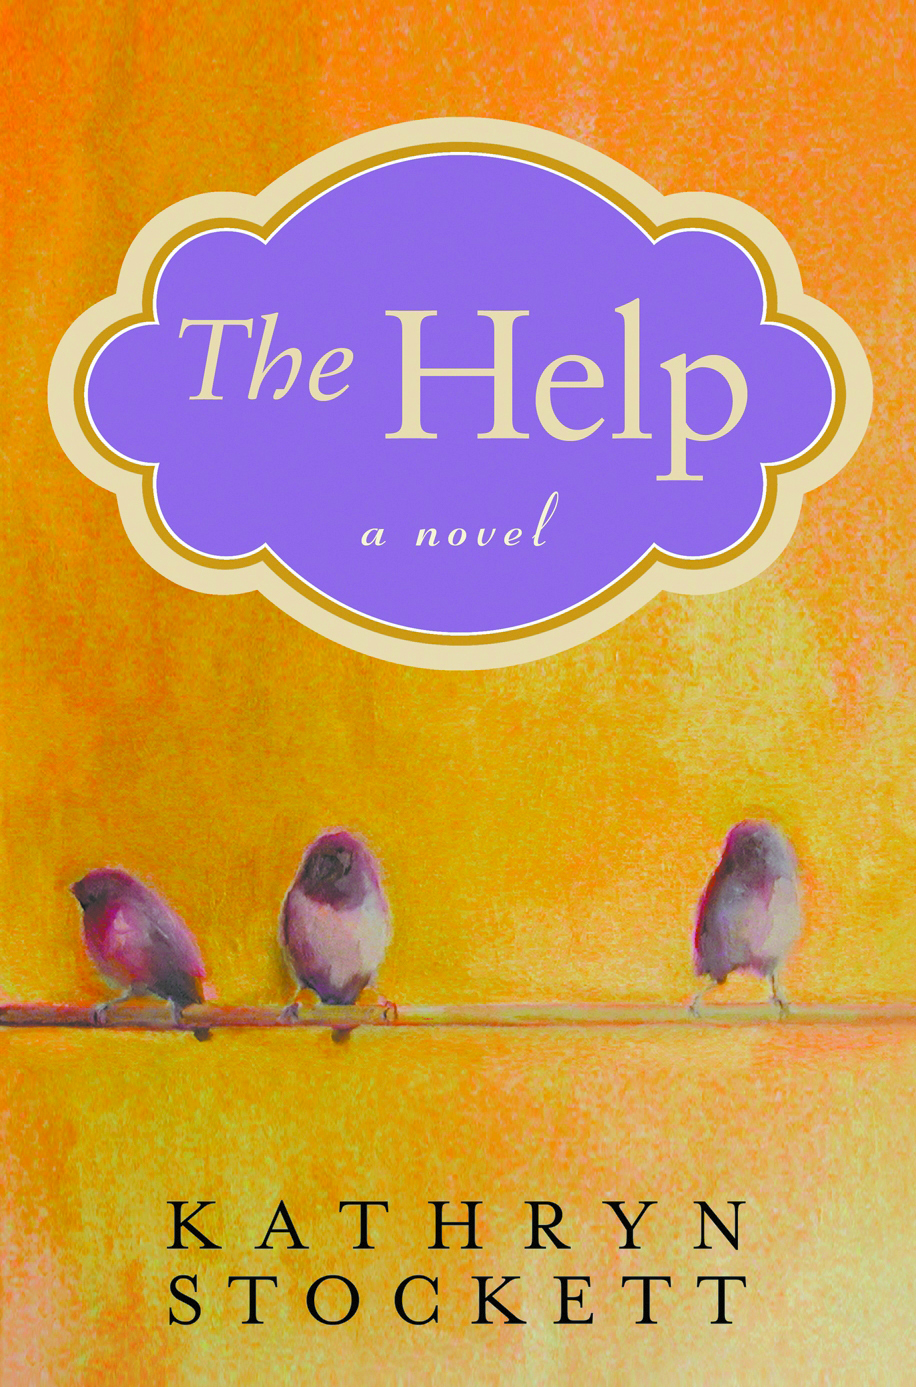 Mississippi: The Help by Kathryn Stockett